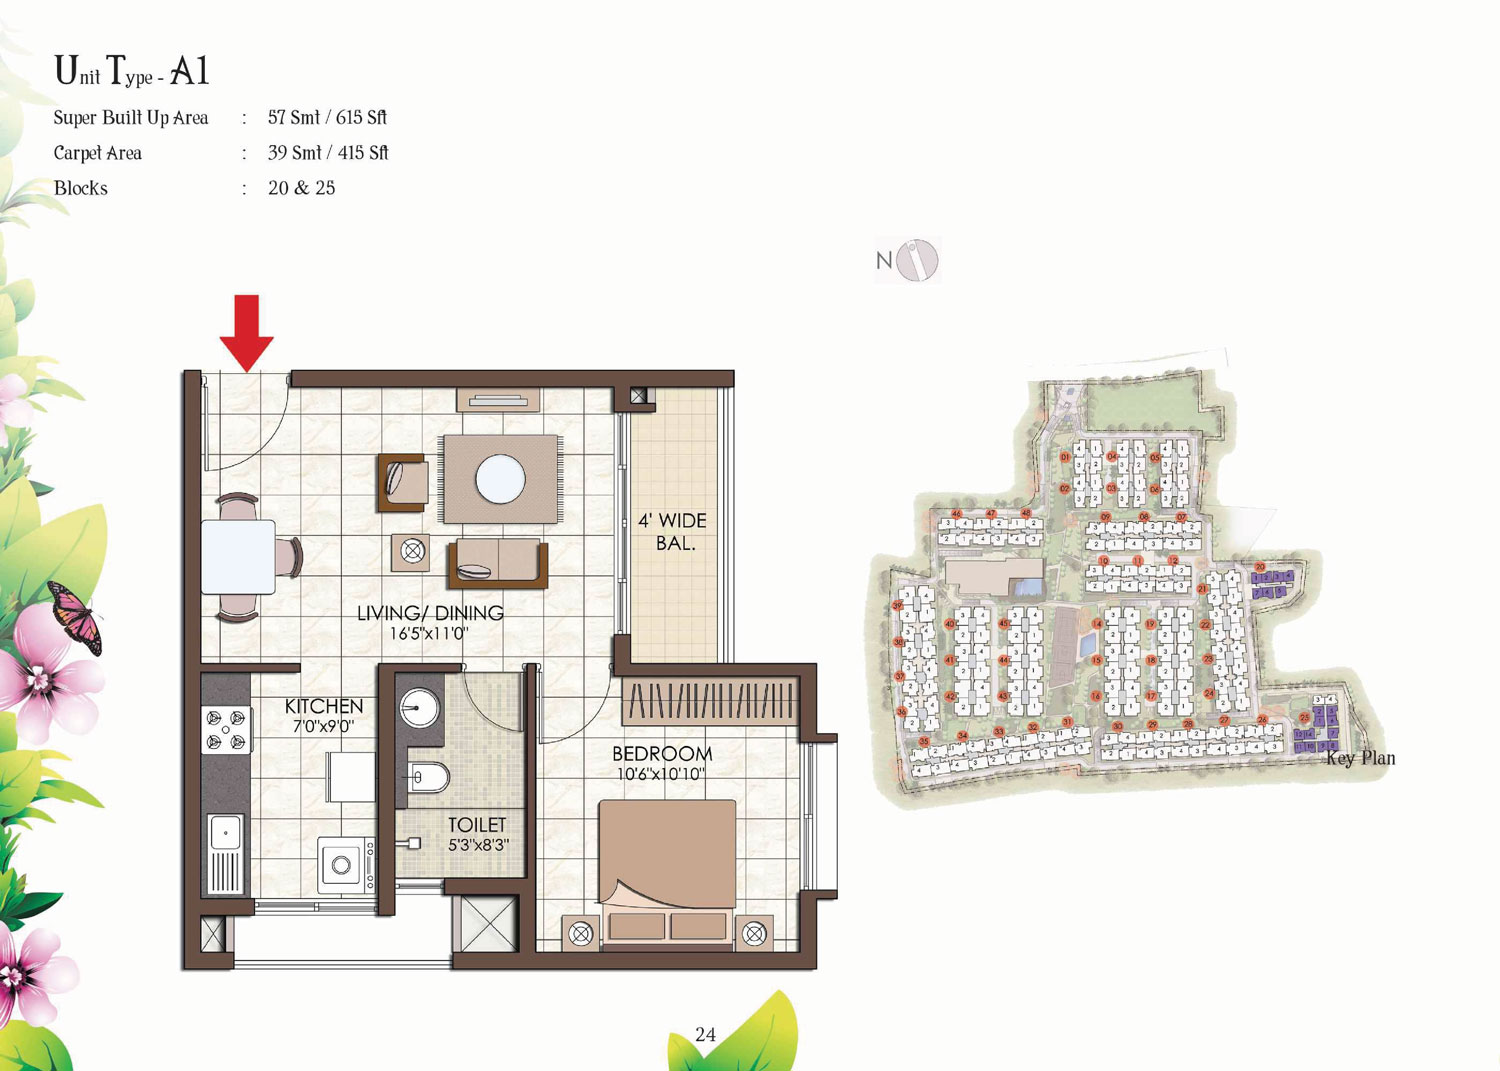 Type A1 - 615 Sq Ft